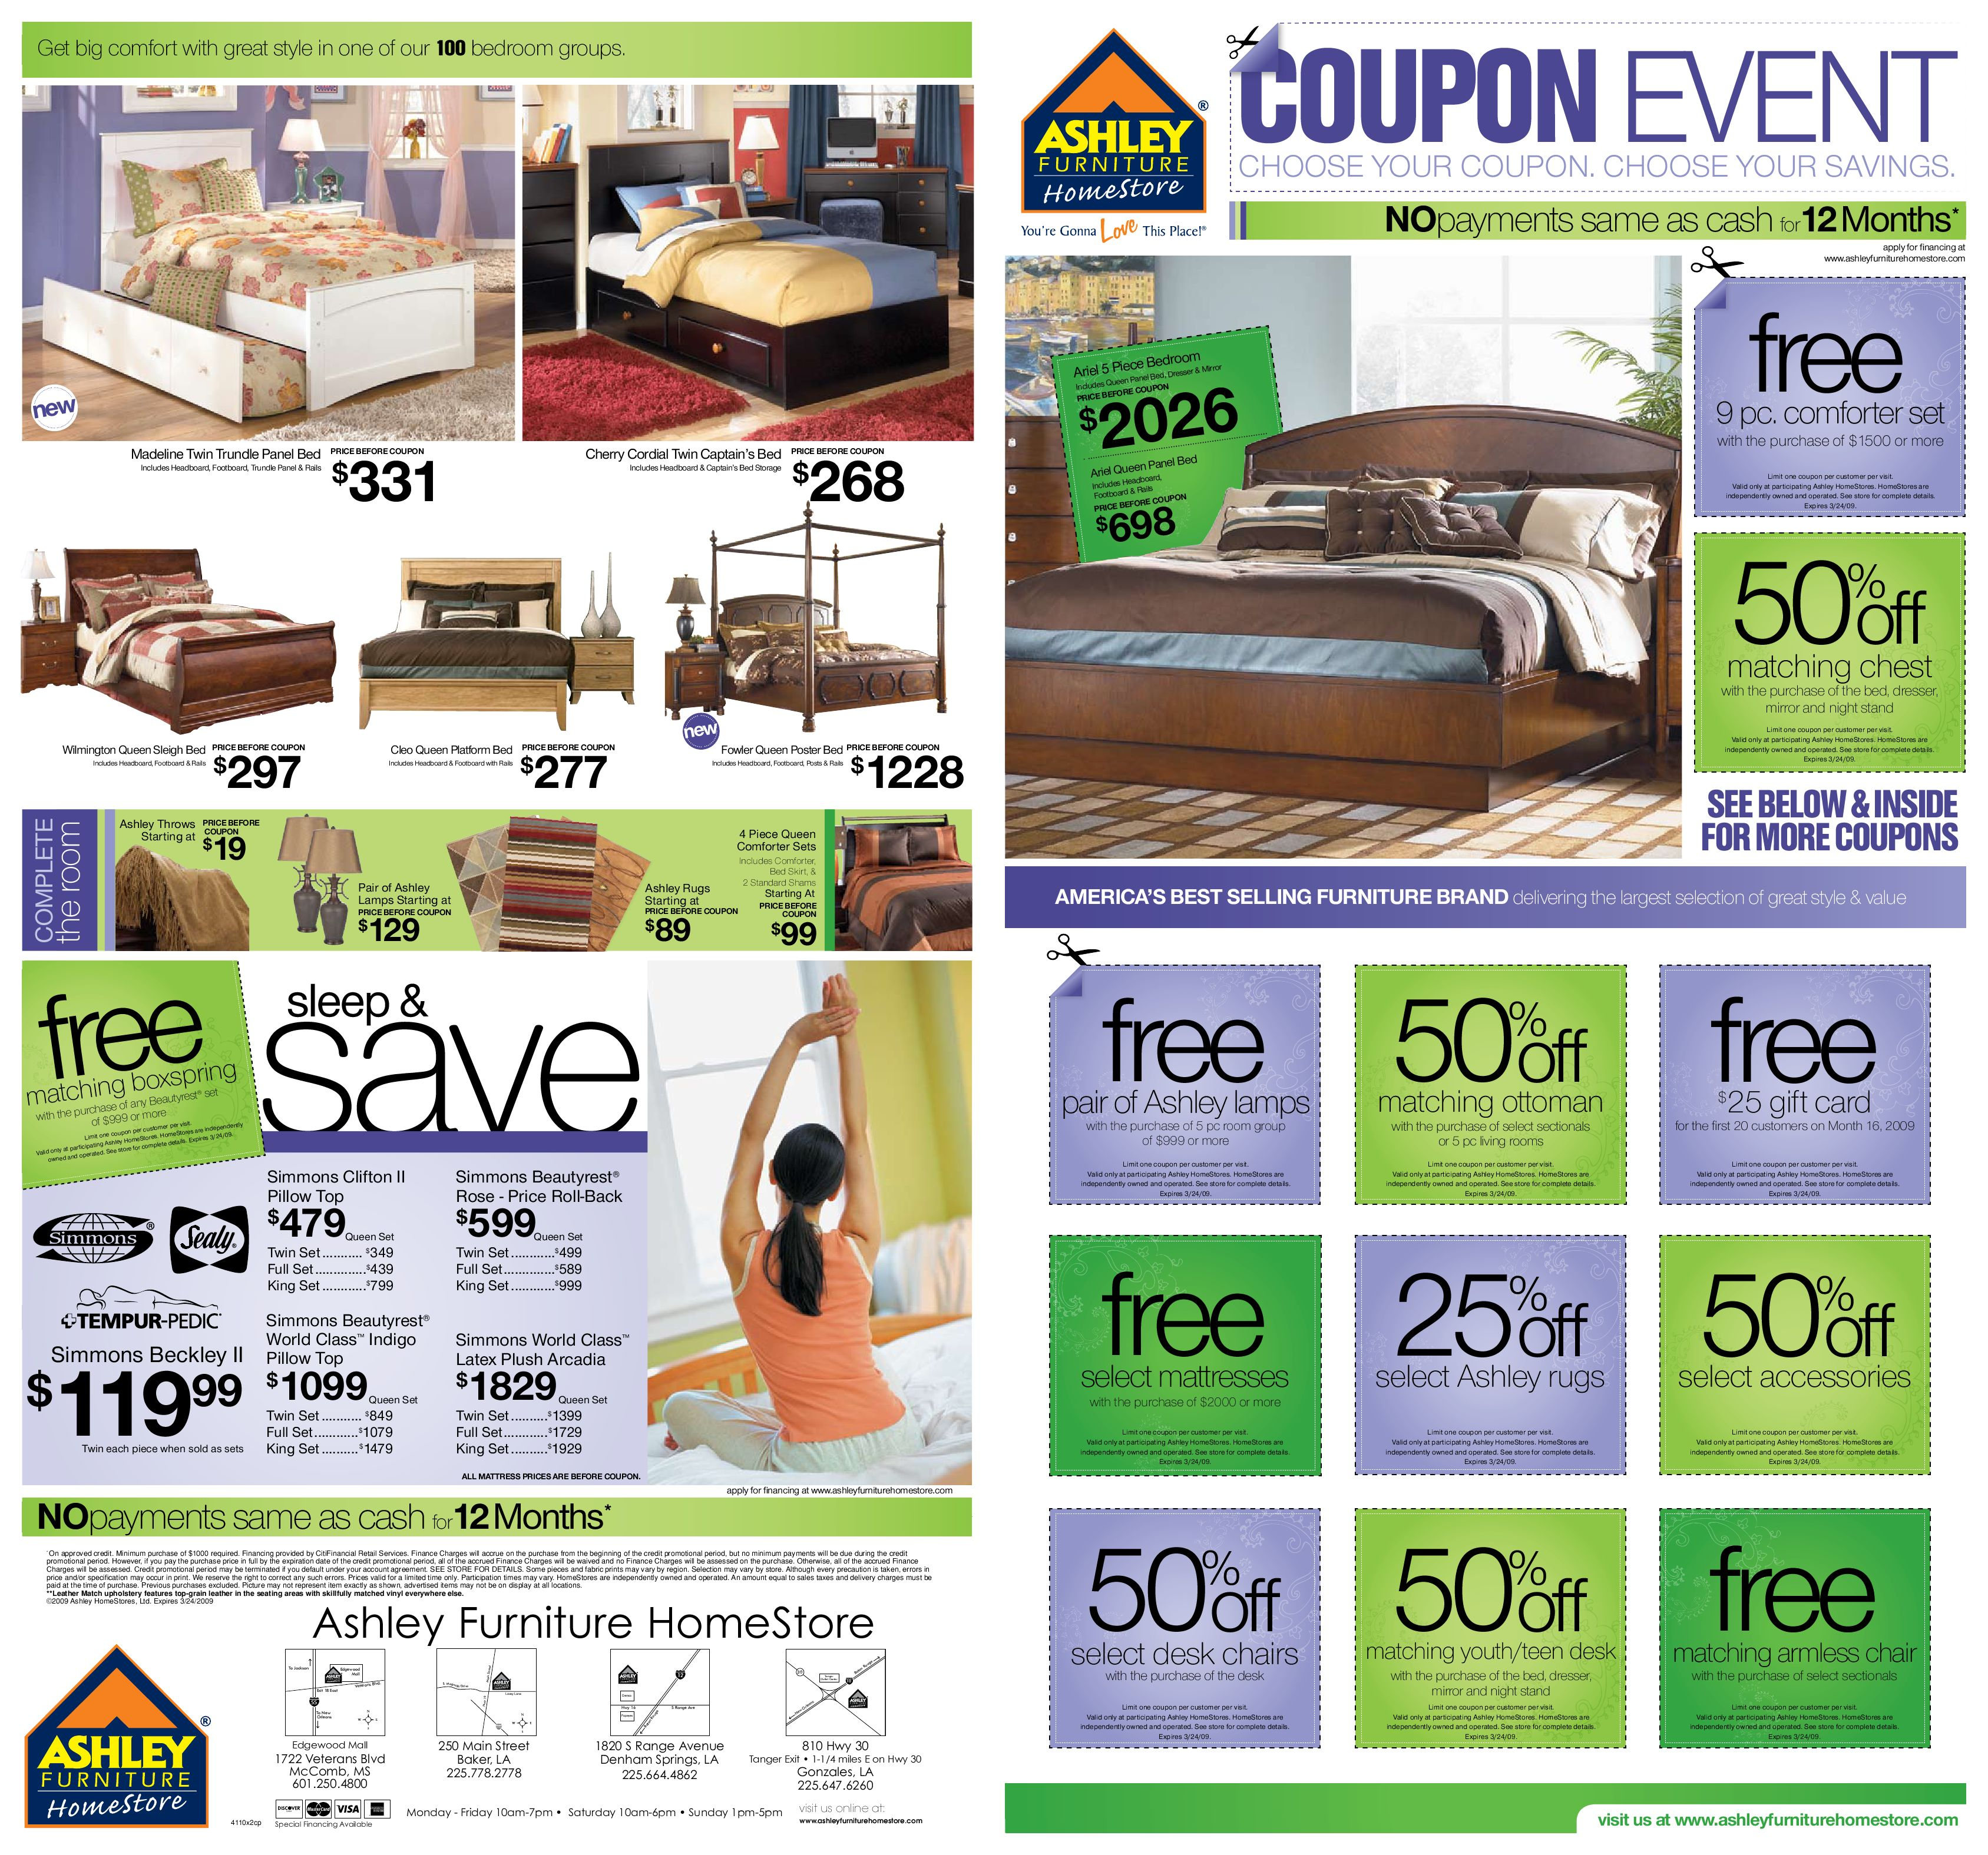 Coupon Event 2009 By Ashley Furniture